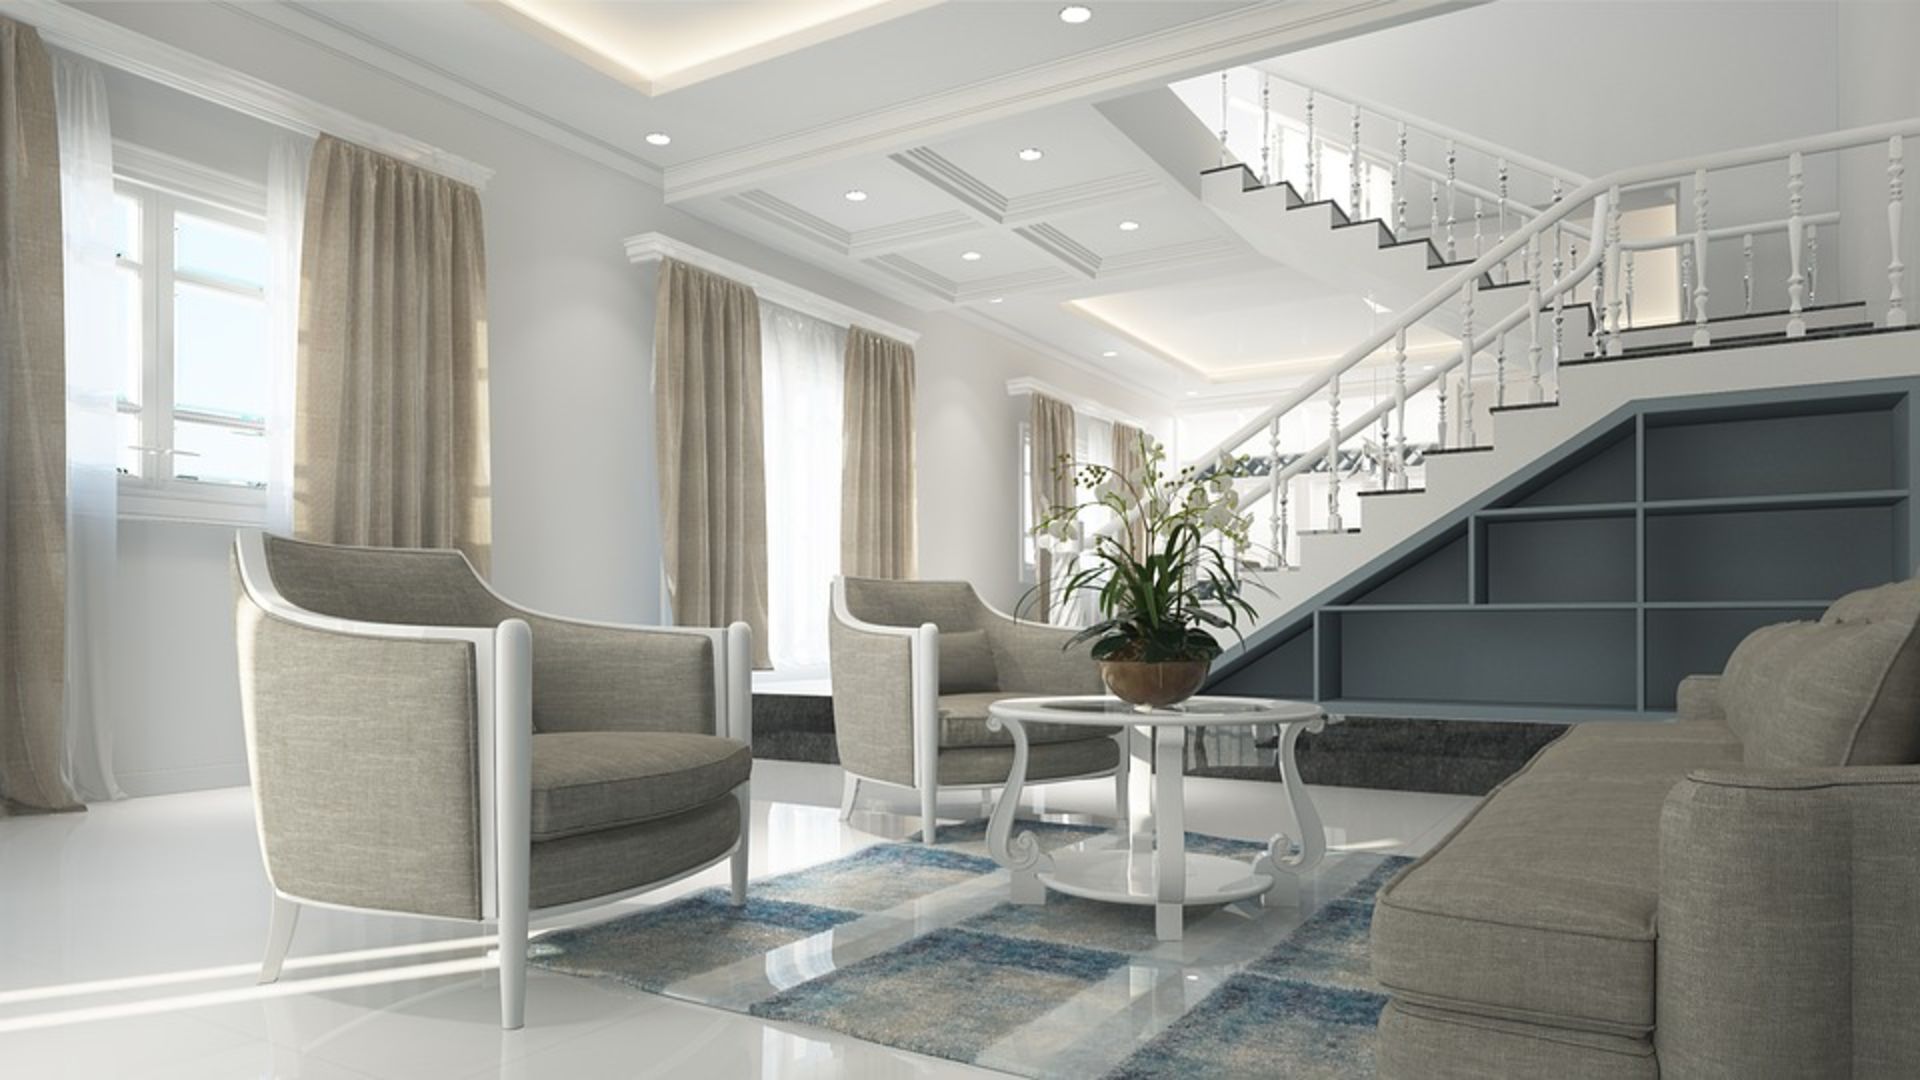 Top things Buyers looks for in a Luxury Home